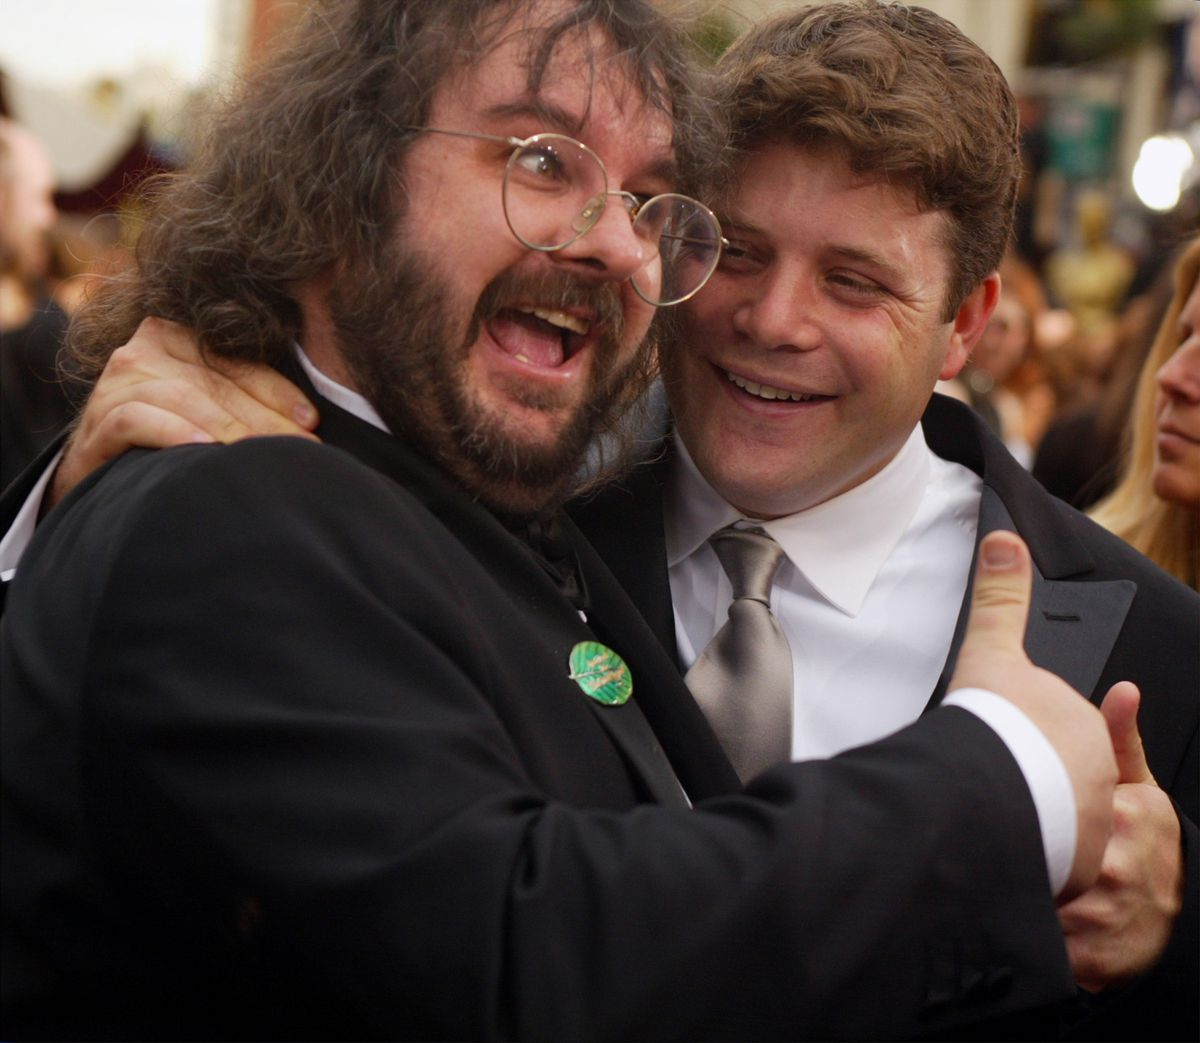 Director Peter Jackson (L) and actor Sean Astin arrive at the 74th annual Academy